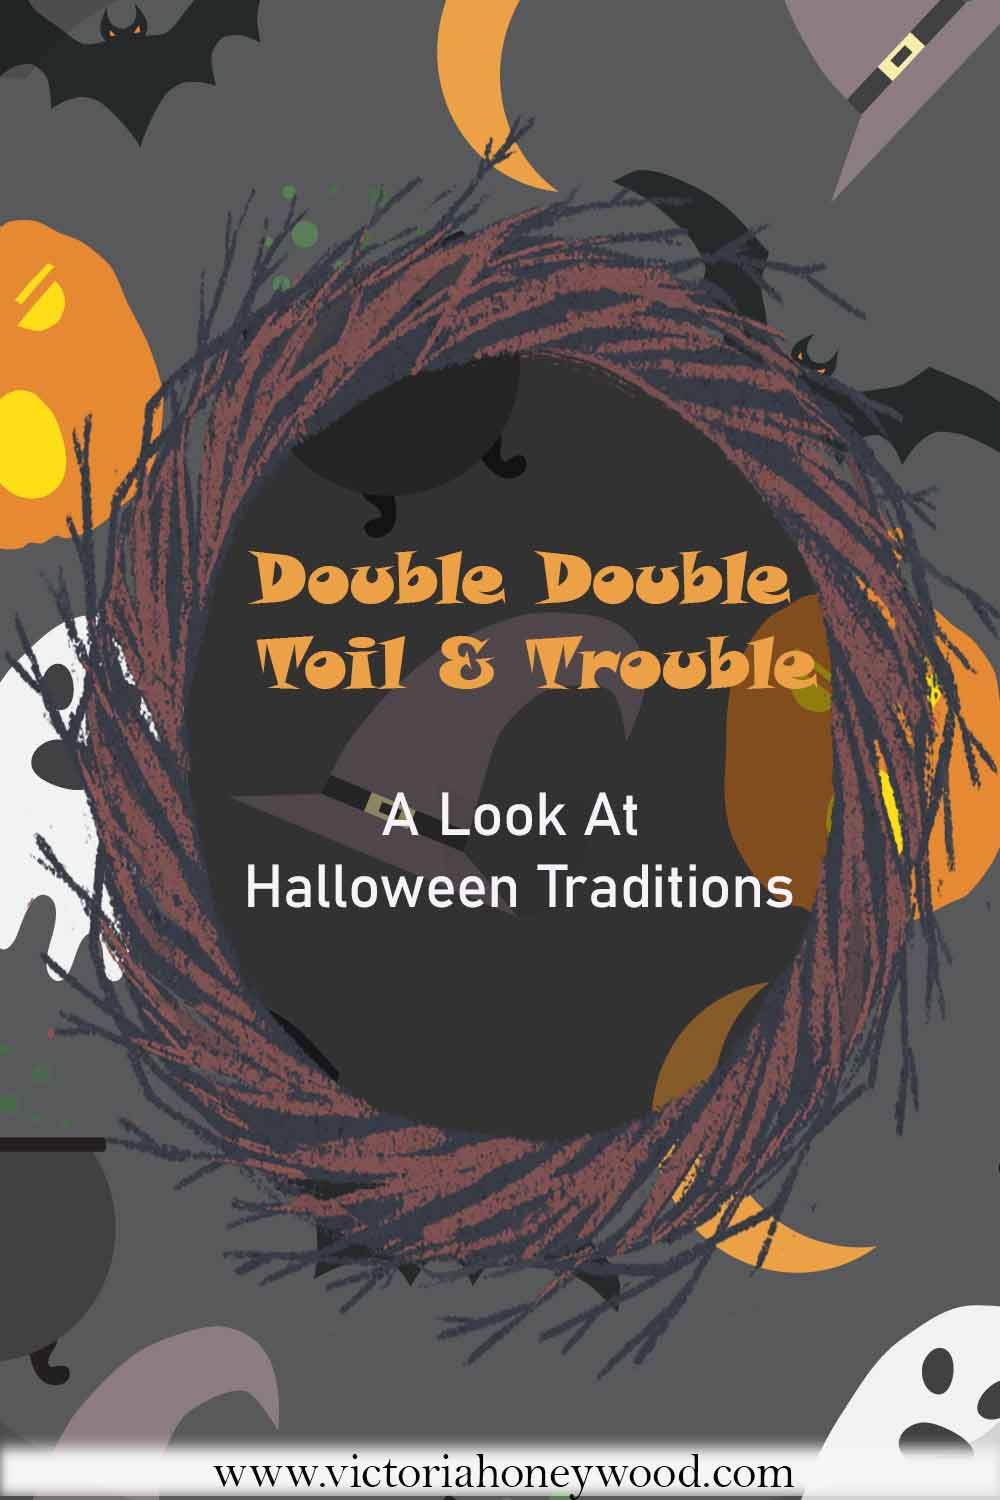 A look at Halloween traditions and customs through the ages. #halloween #halloweentraditions #halloweencustoms